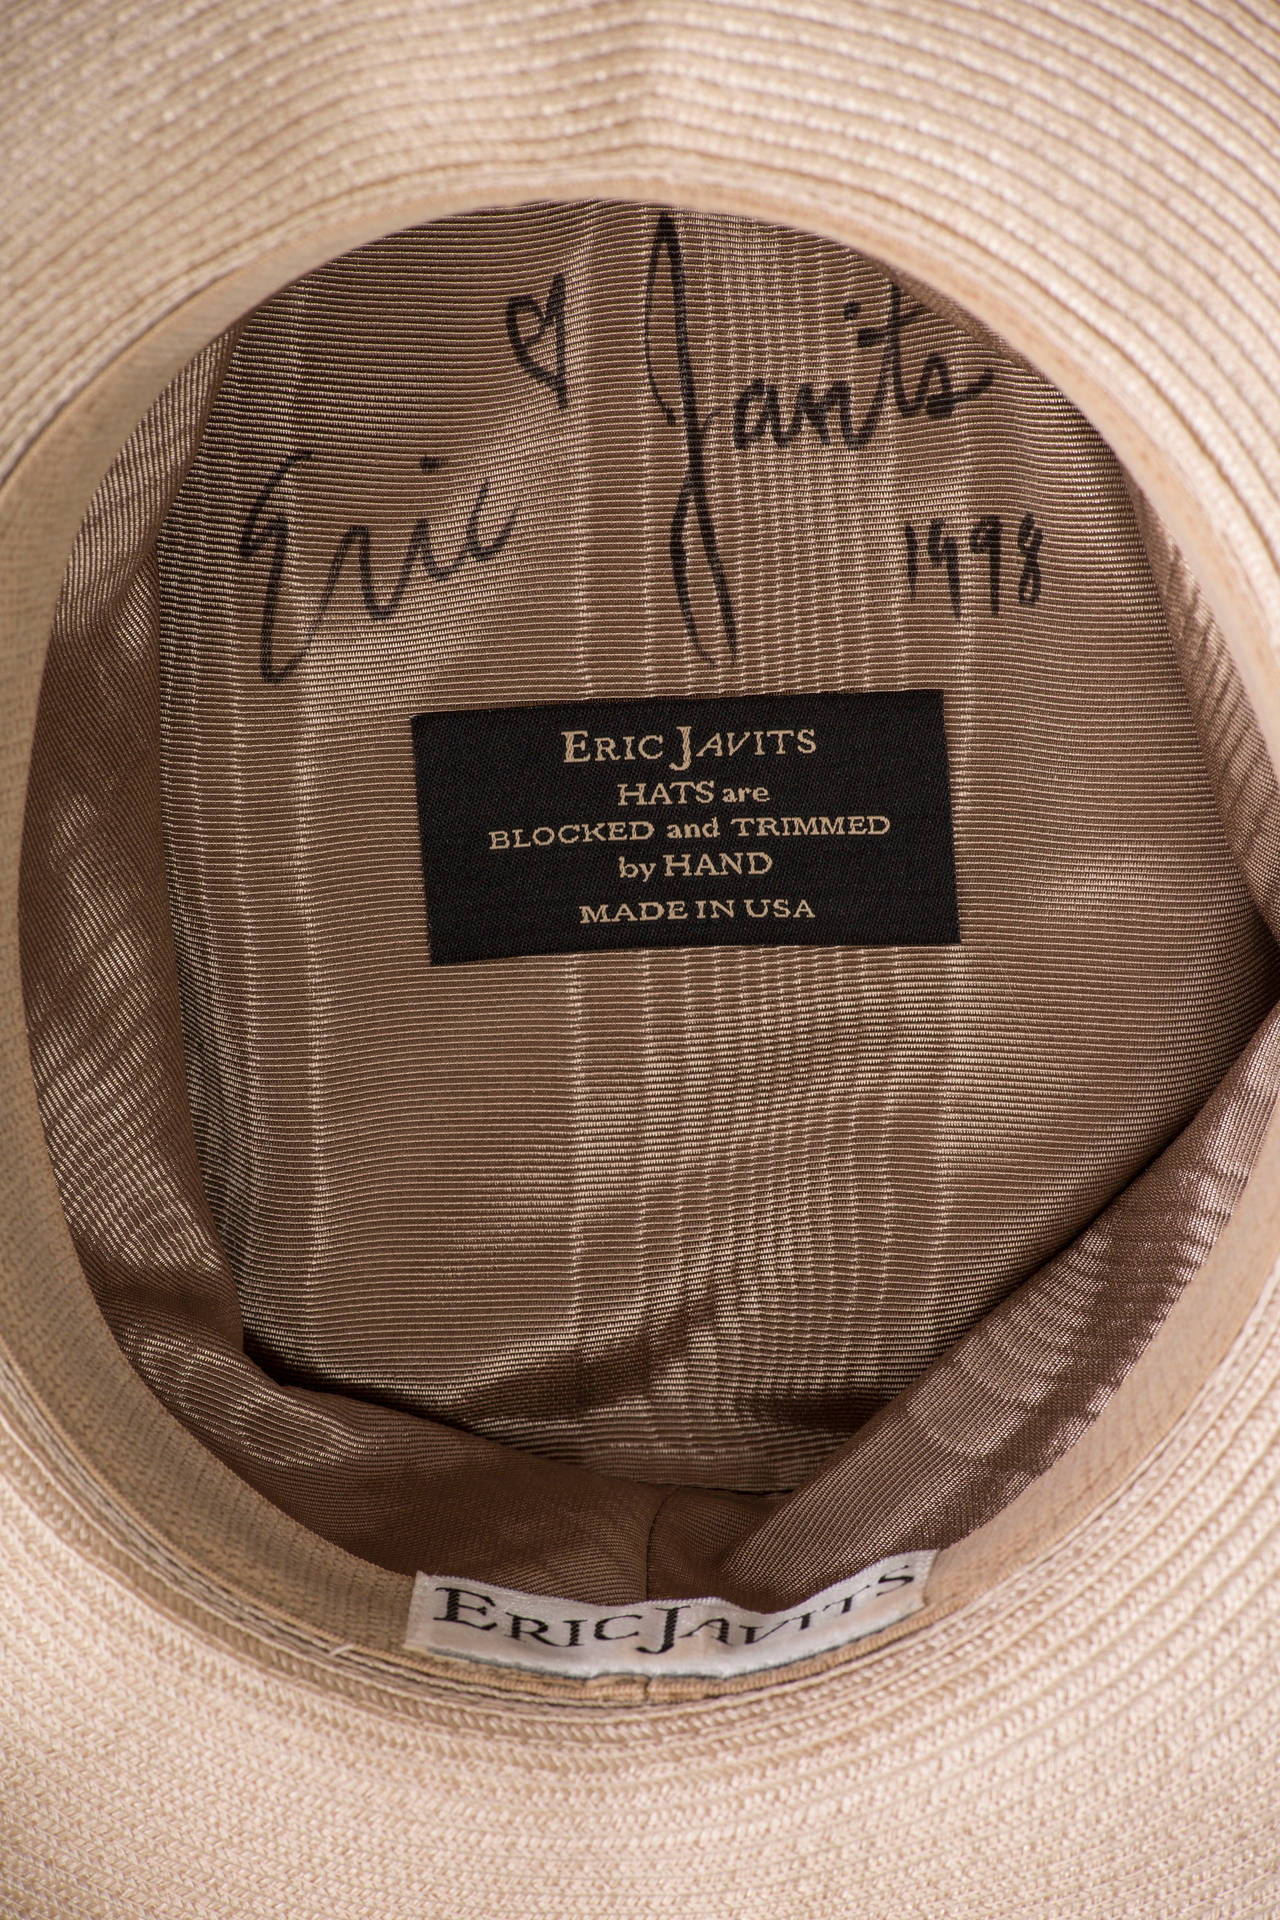 Eric Javits Hand Blocked and Trimmed Hat Circa 1998 6